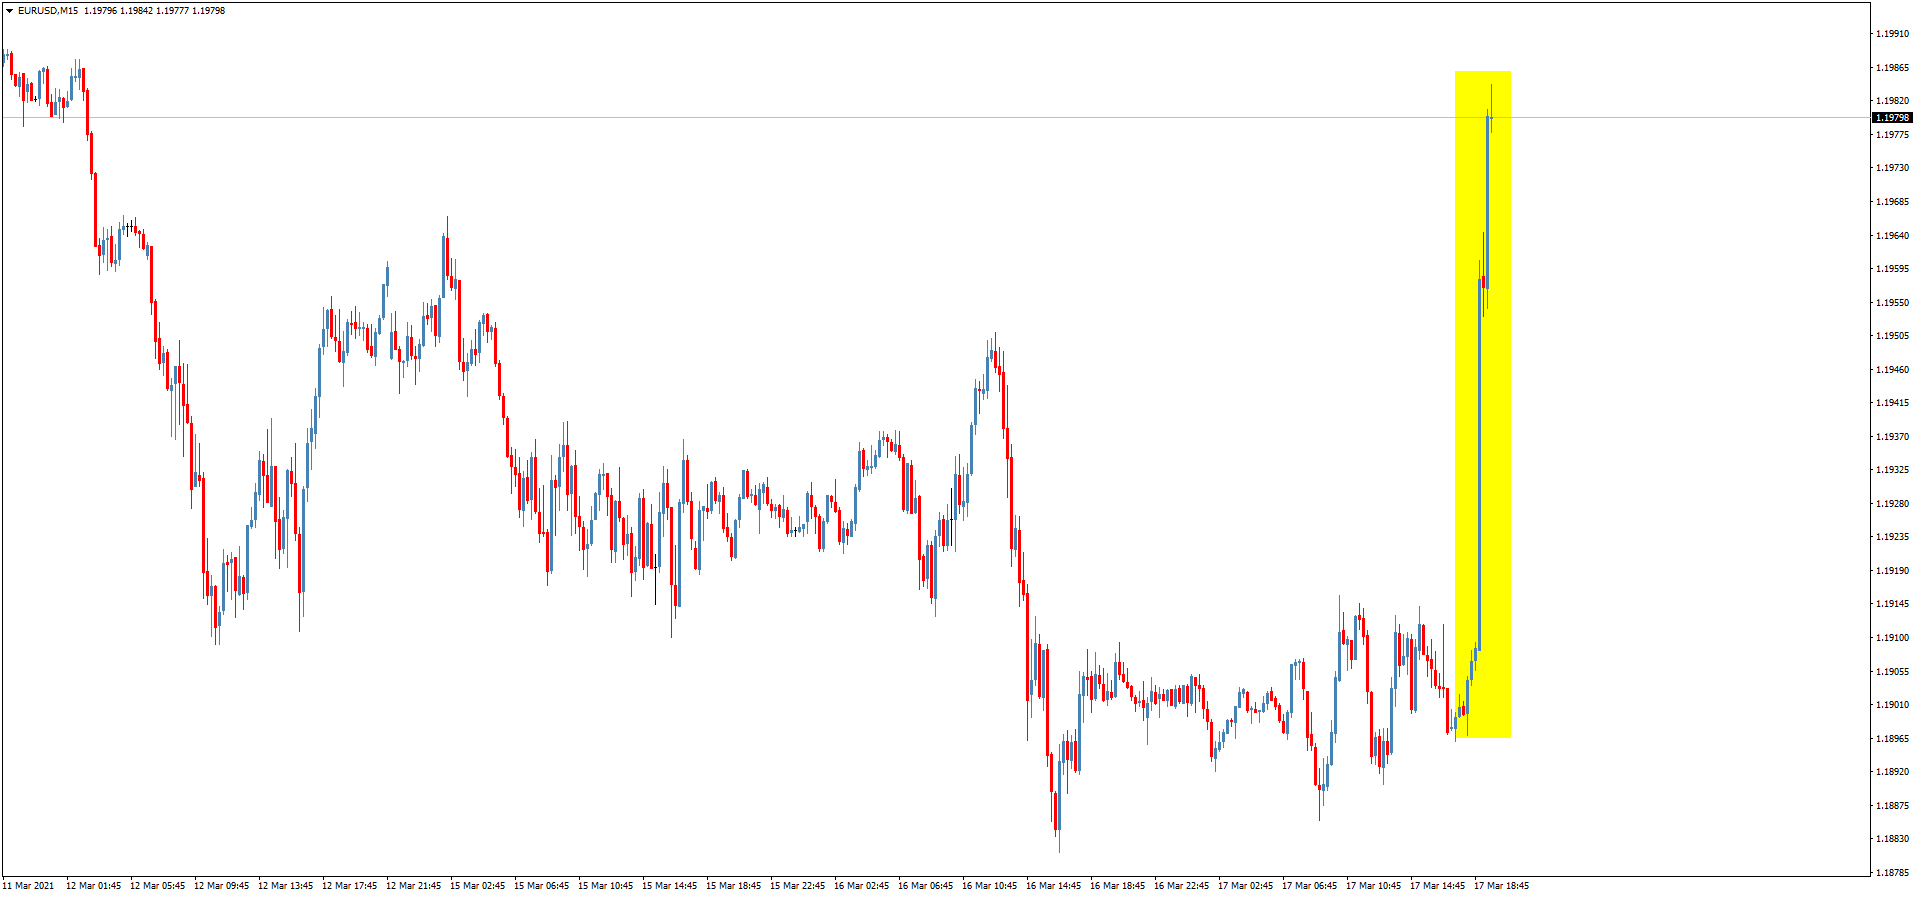 EUR / USD exchange rate during the Fed meeting and Powell's press conference